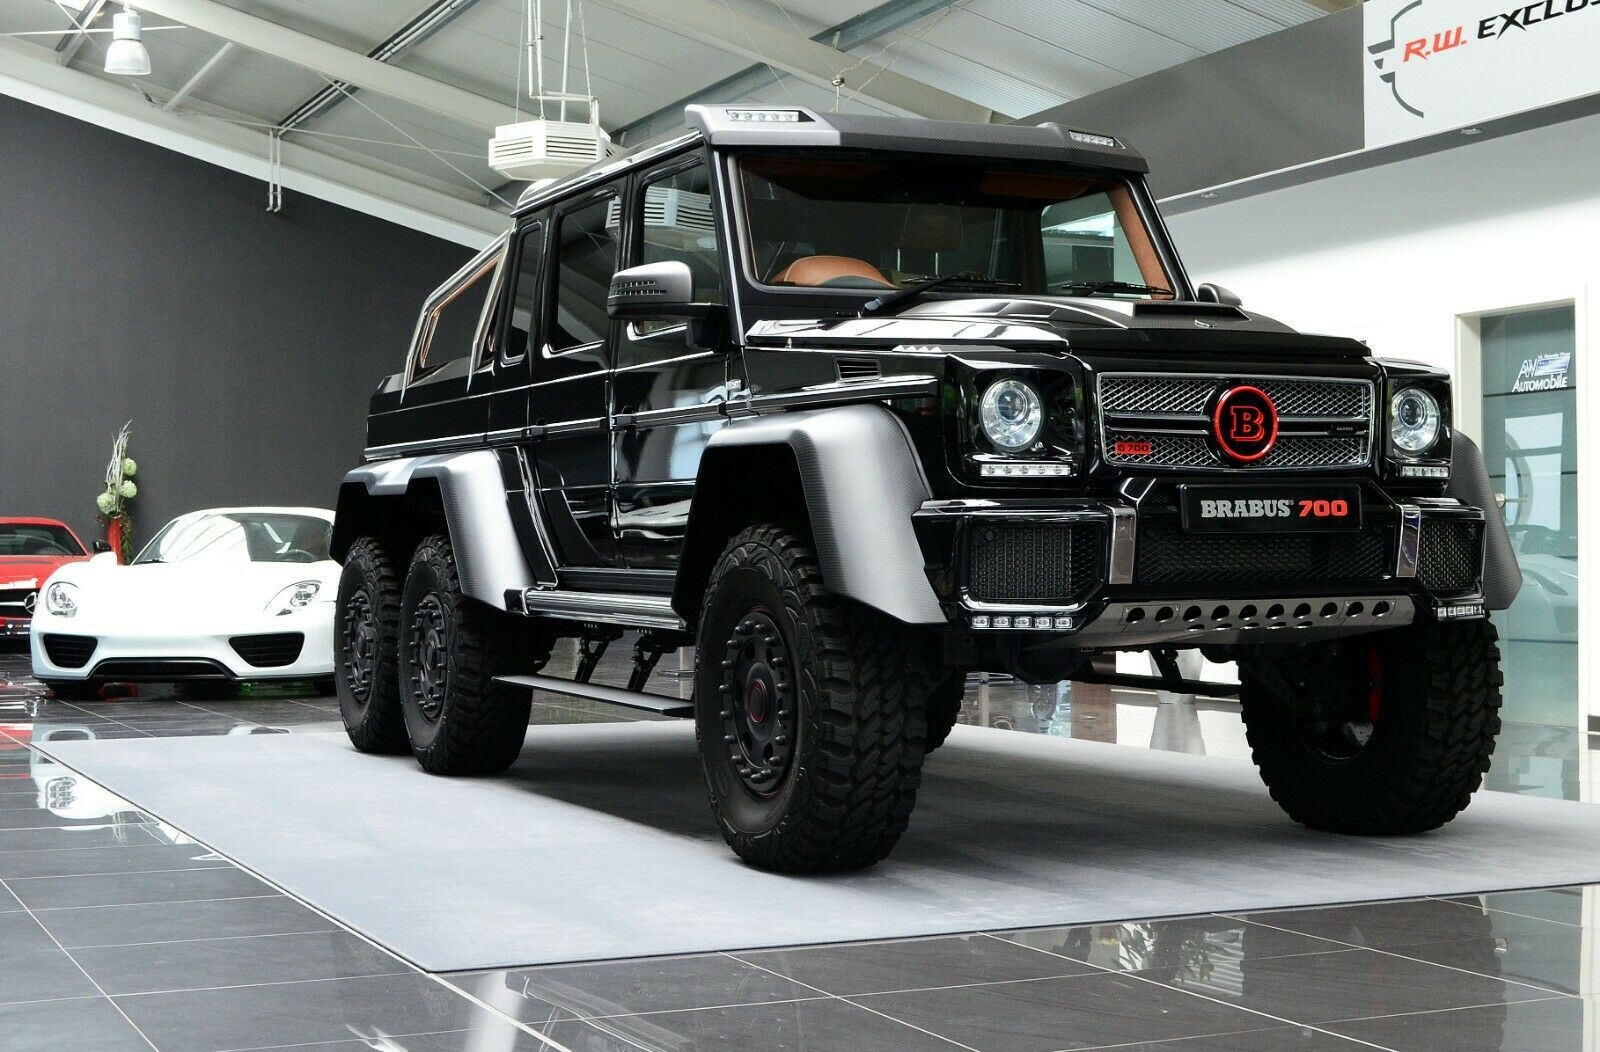 Mercedes 6X6 For Sale >> Mercedes Benz G 63 Amg 6x6 Brabus700 1of15 Luxury Pulse